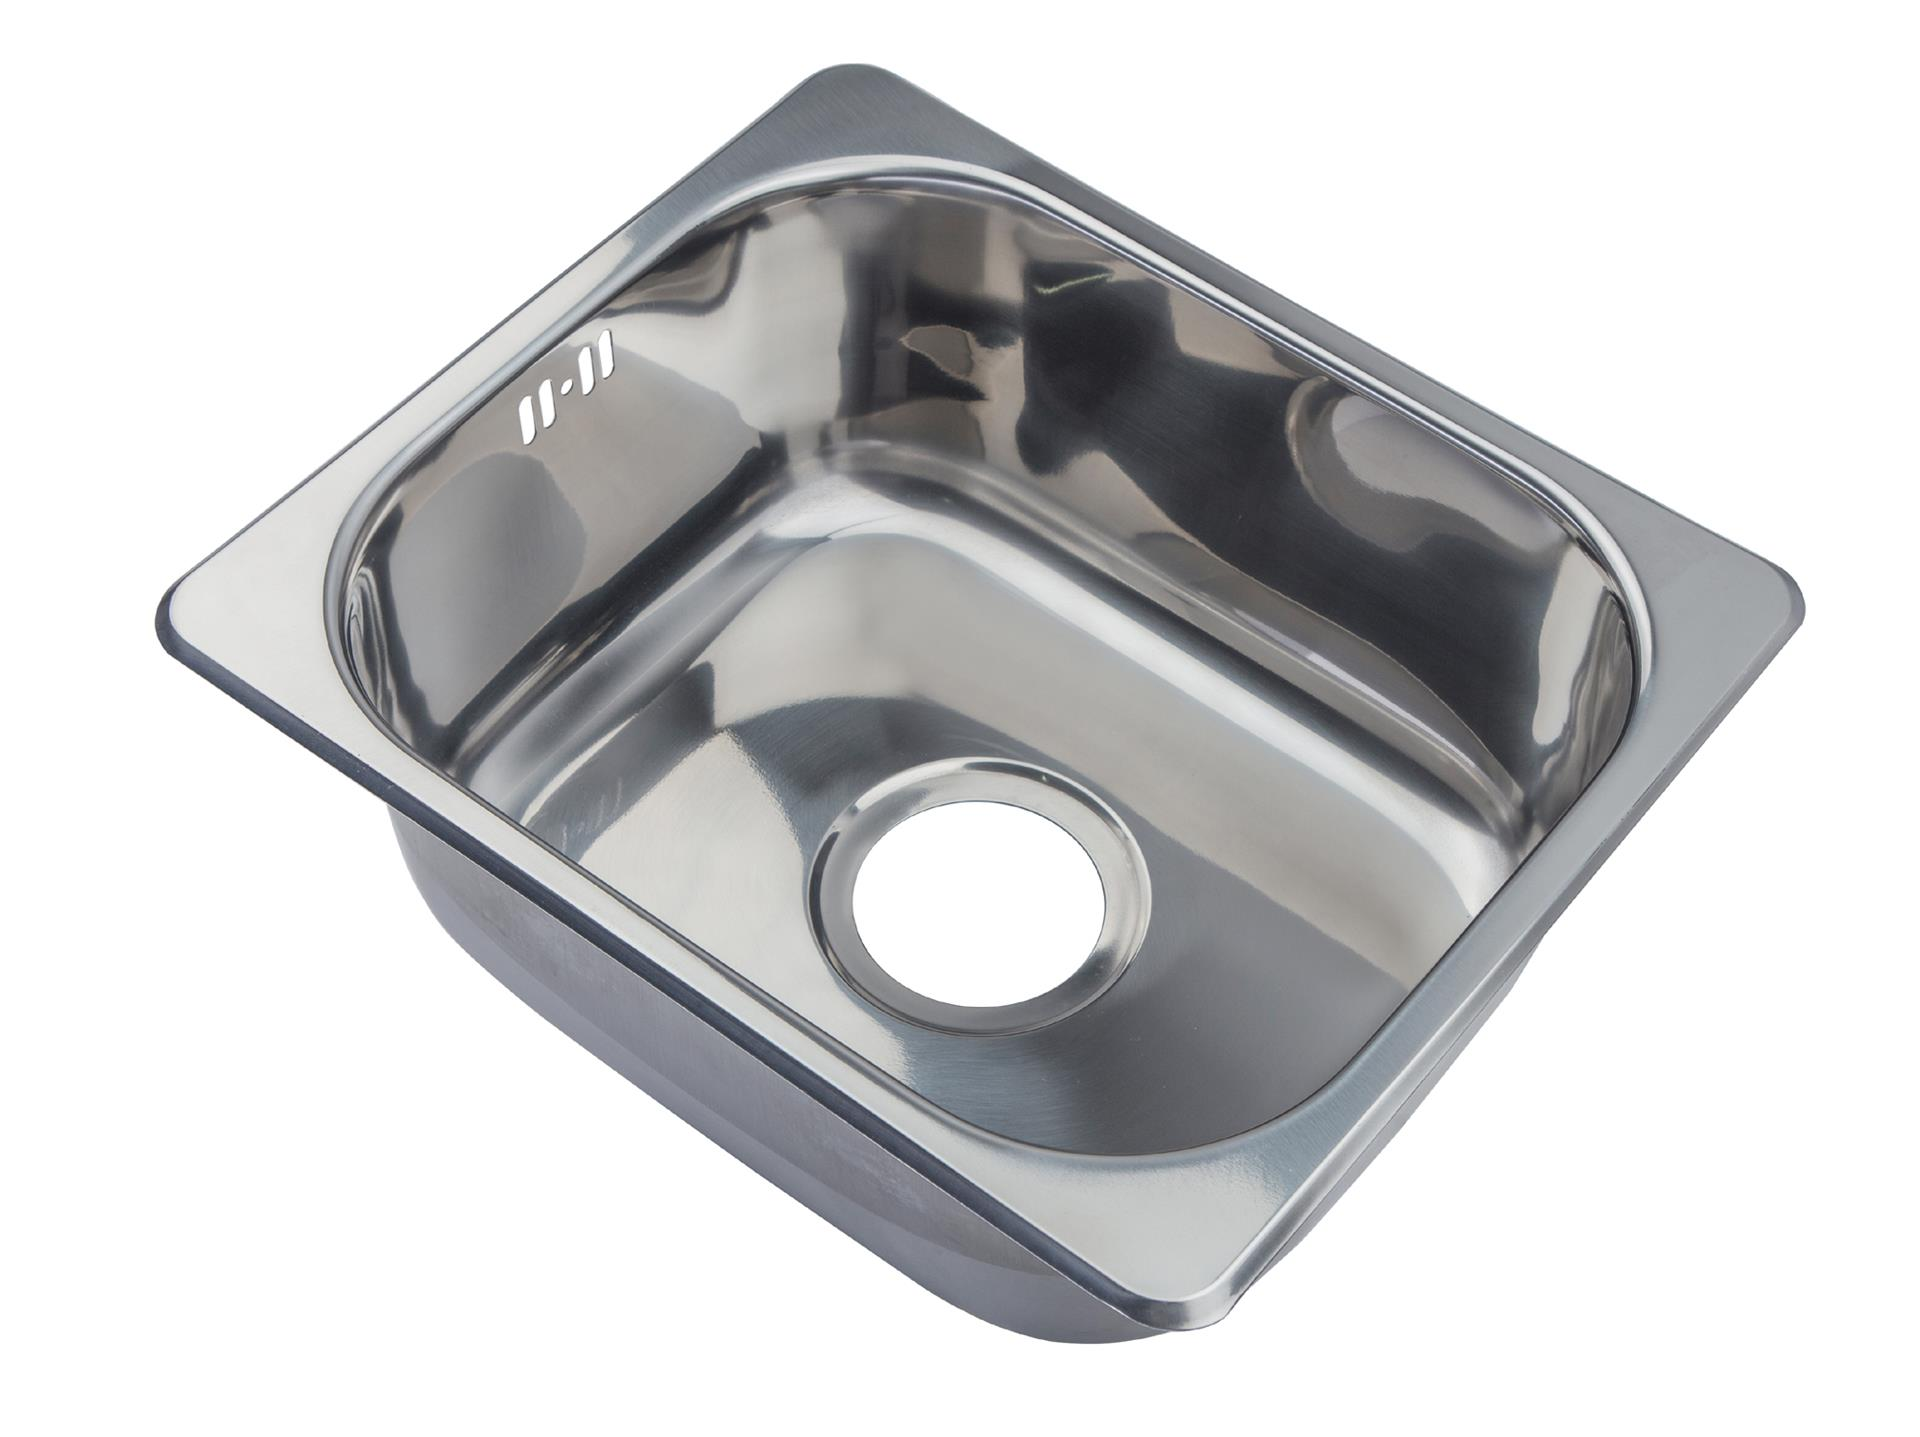 Small Top Mount Inset Stainless Steel Kitchen Sinks With Fittings Ebay